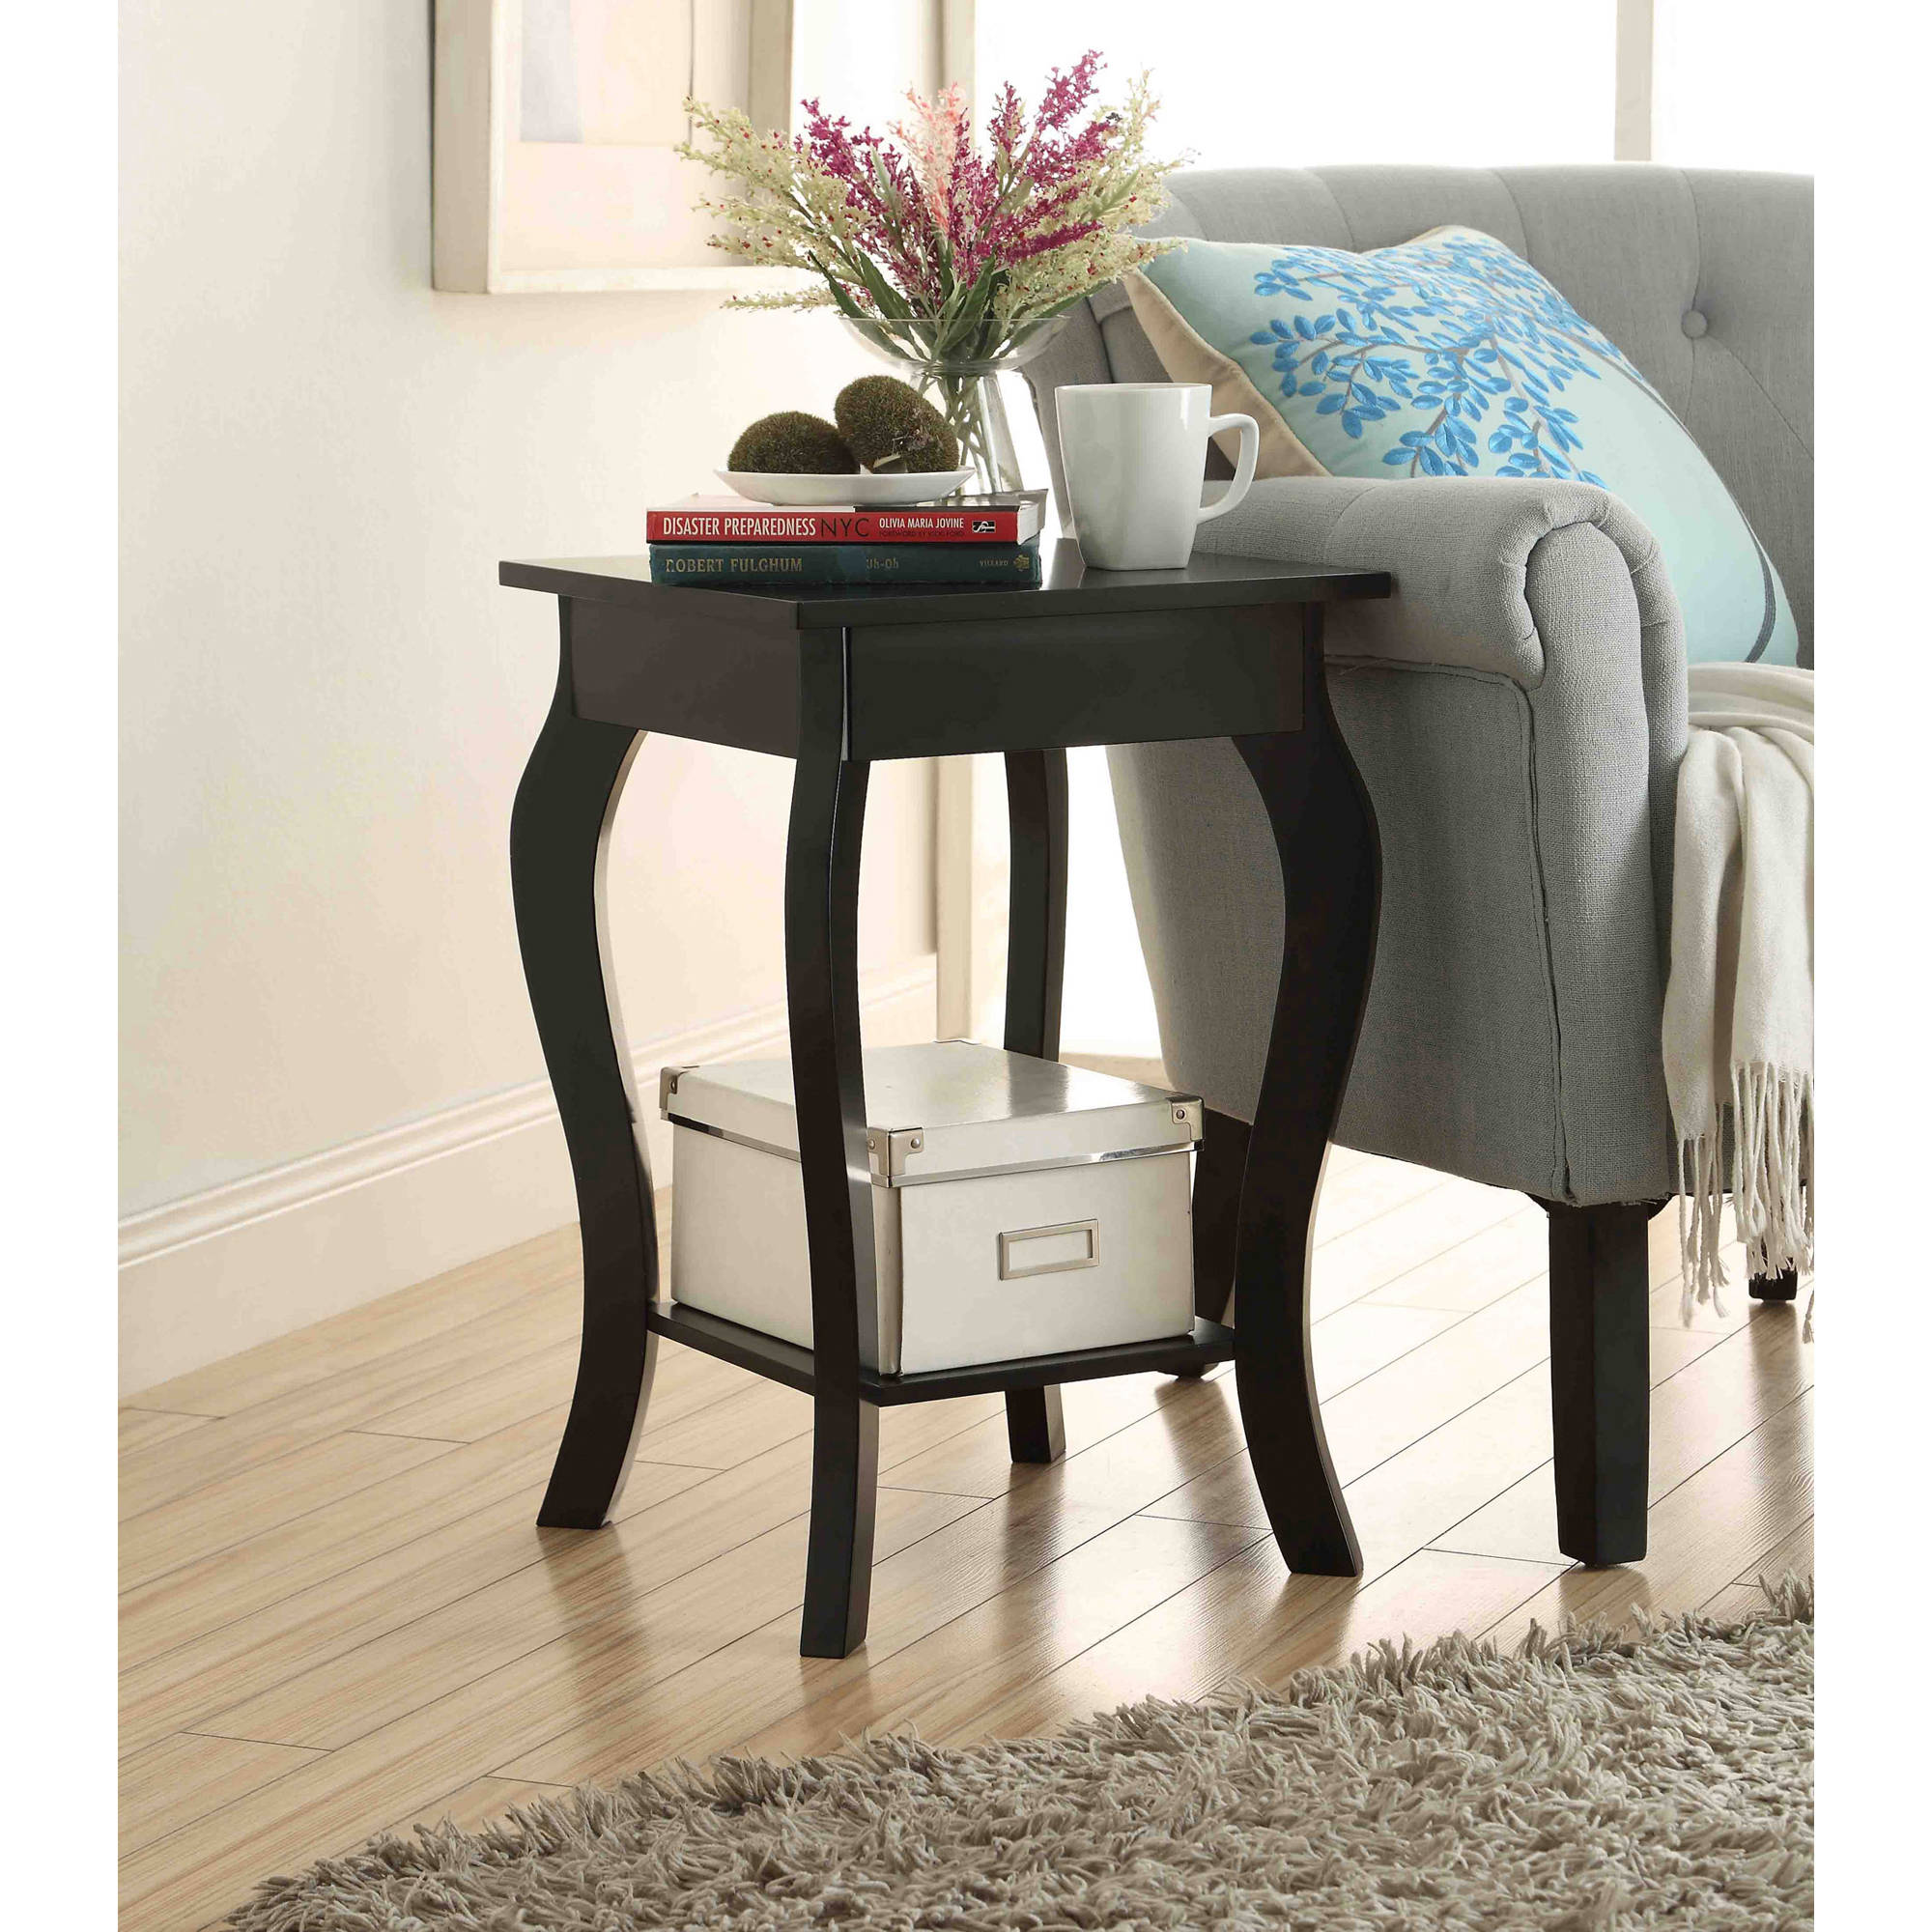 delectable target accent end tables white for bench and storage ott kijiji furniture decorative cabinet outdoor living gold antique tall threshold glass round modern room fretwork